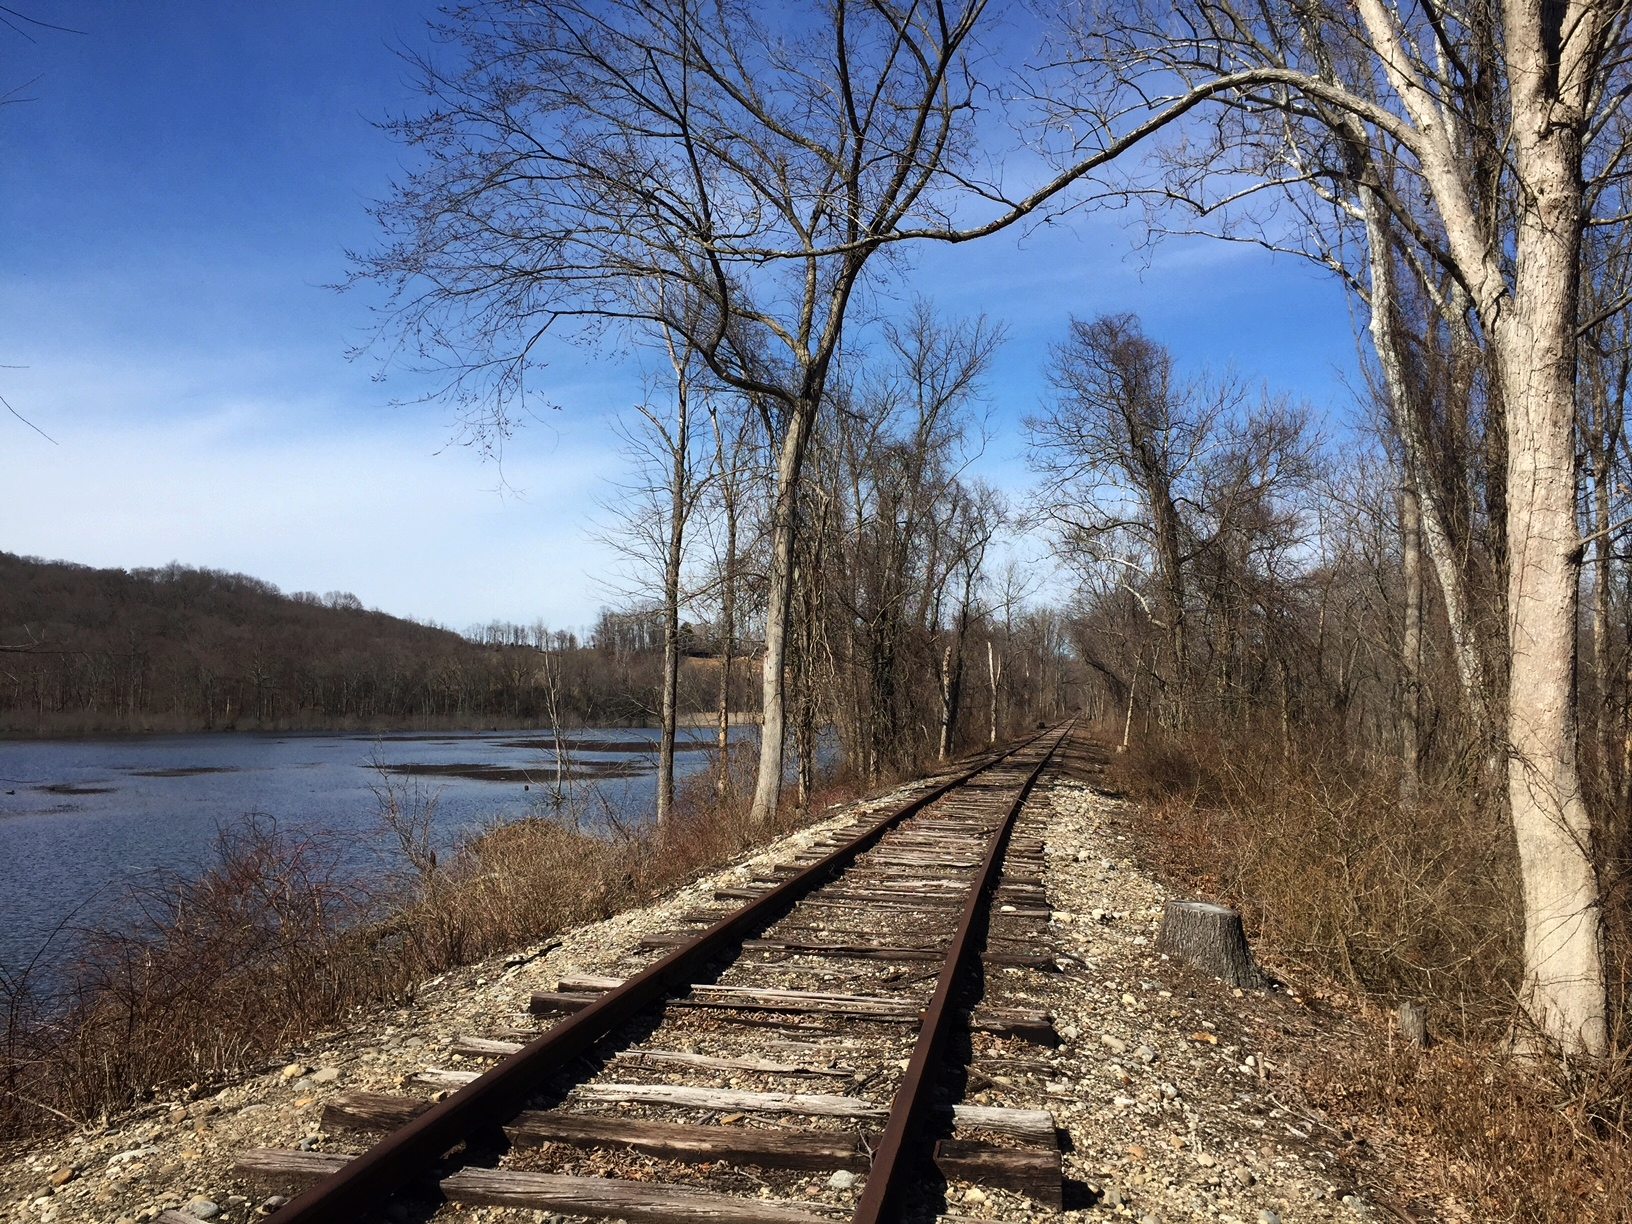 Abandoned railroad adjacent to river valley wetland (Middlesex County, Connecticut). Photograph by Timothy J. Walsh.